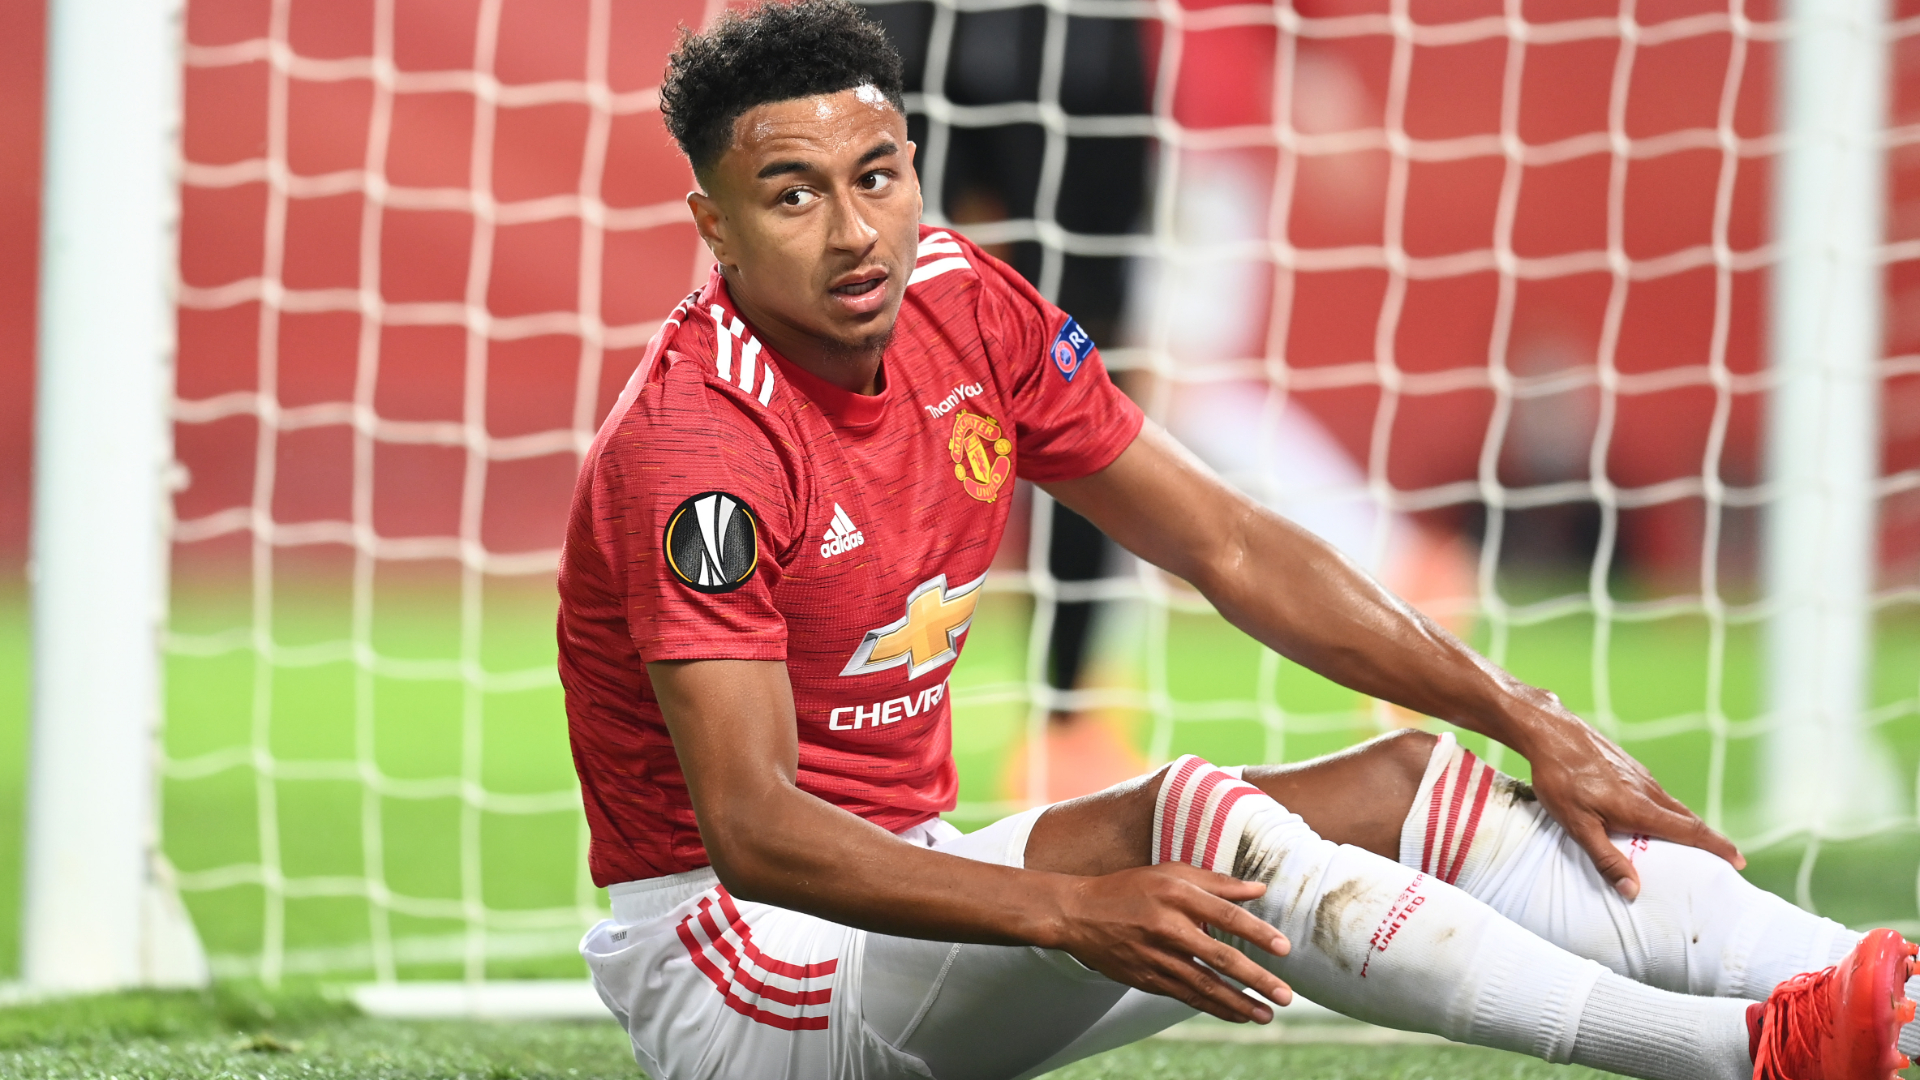 UEFA Europa League Highlights: Manchester United & Inter Milan highlights from Round of 16